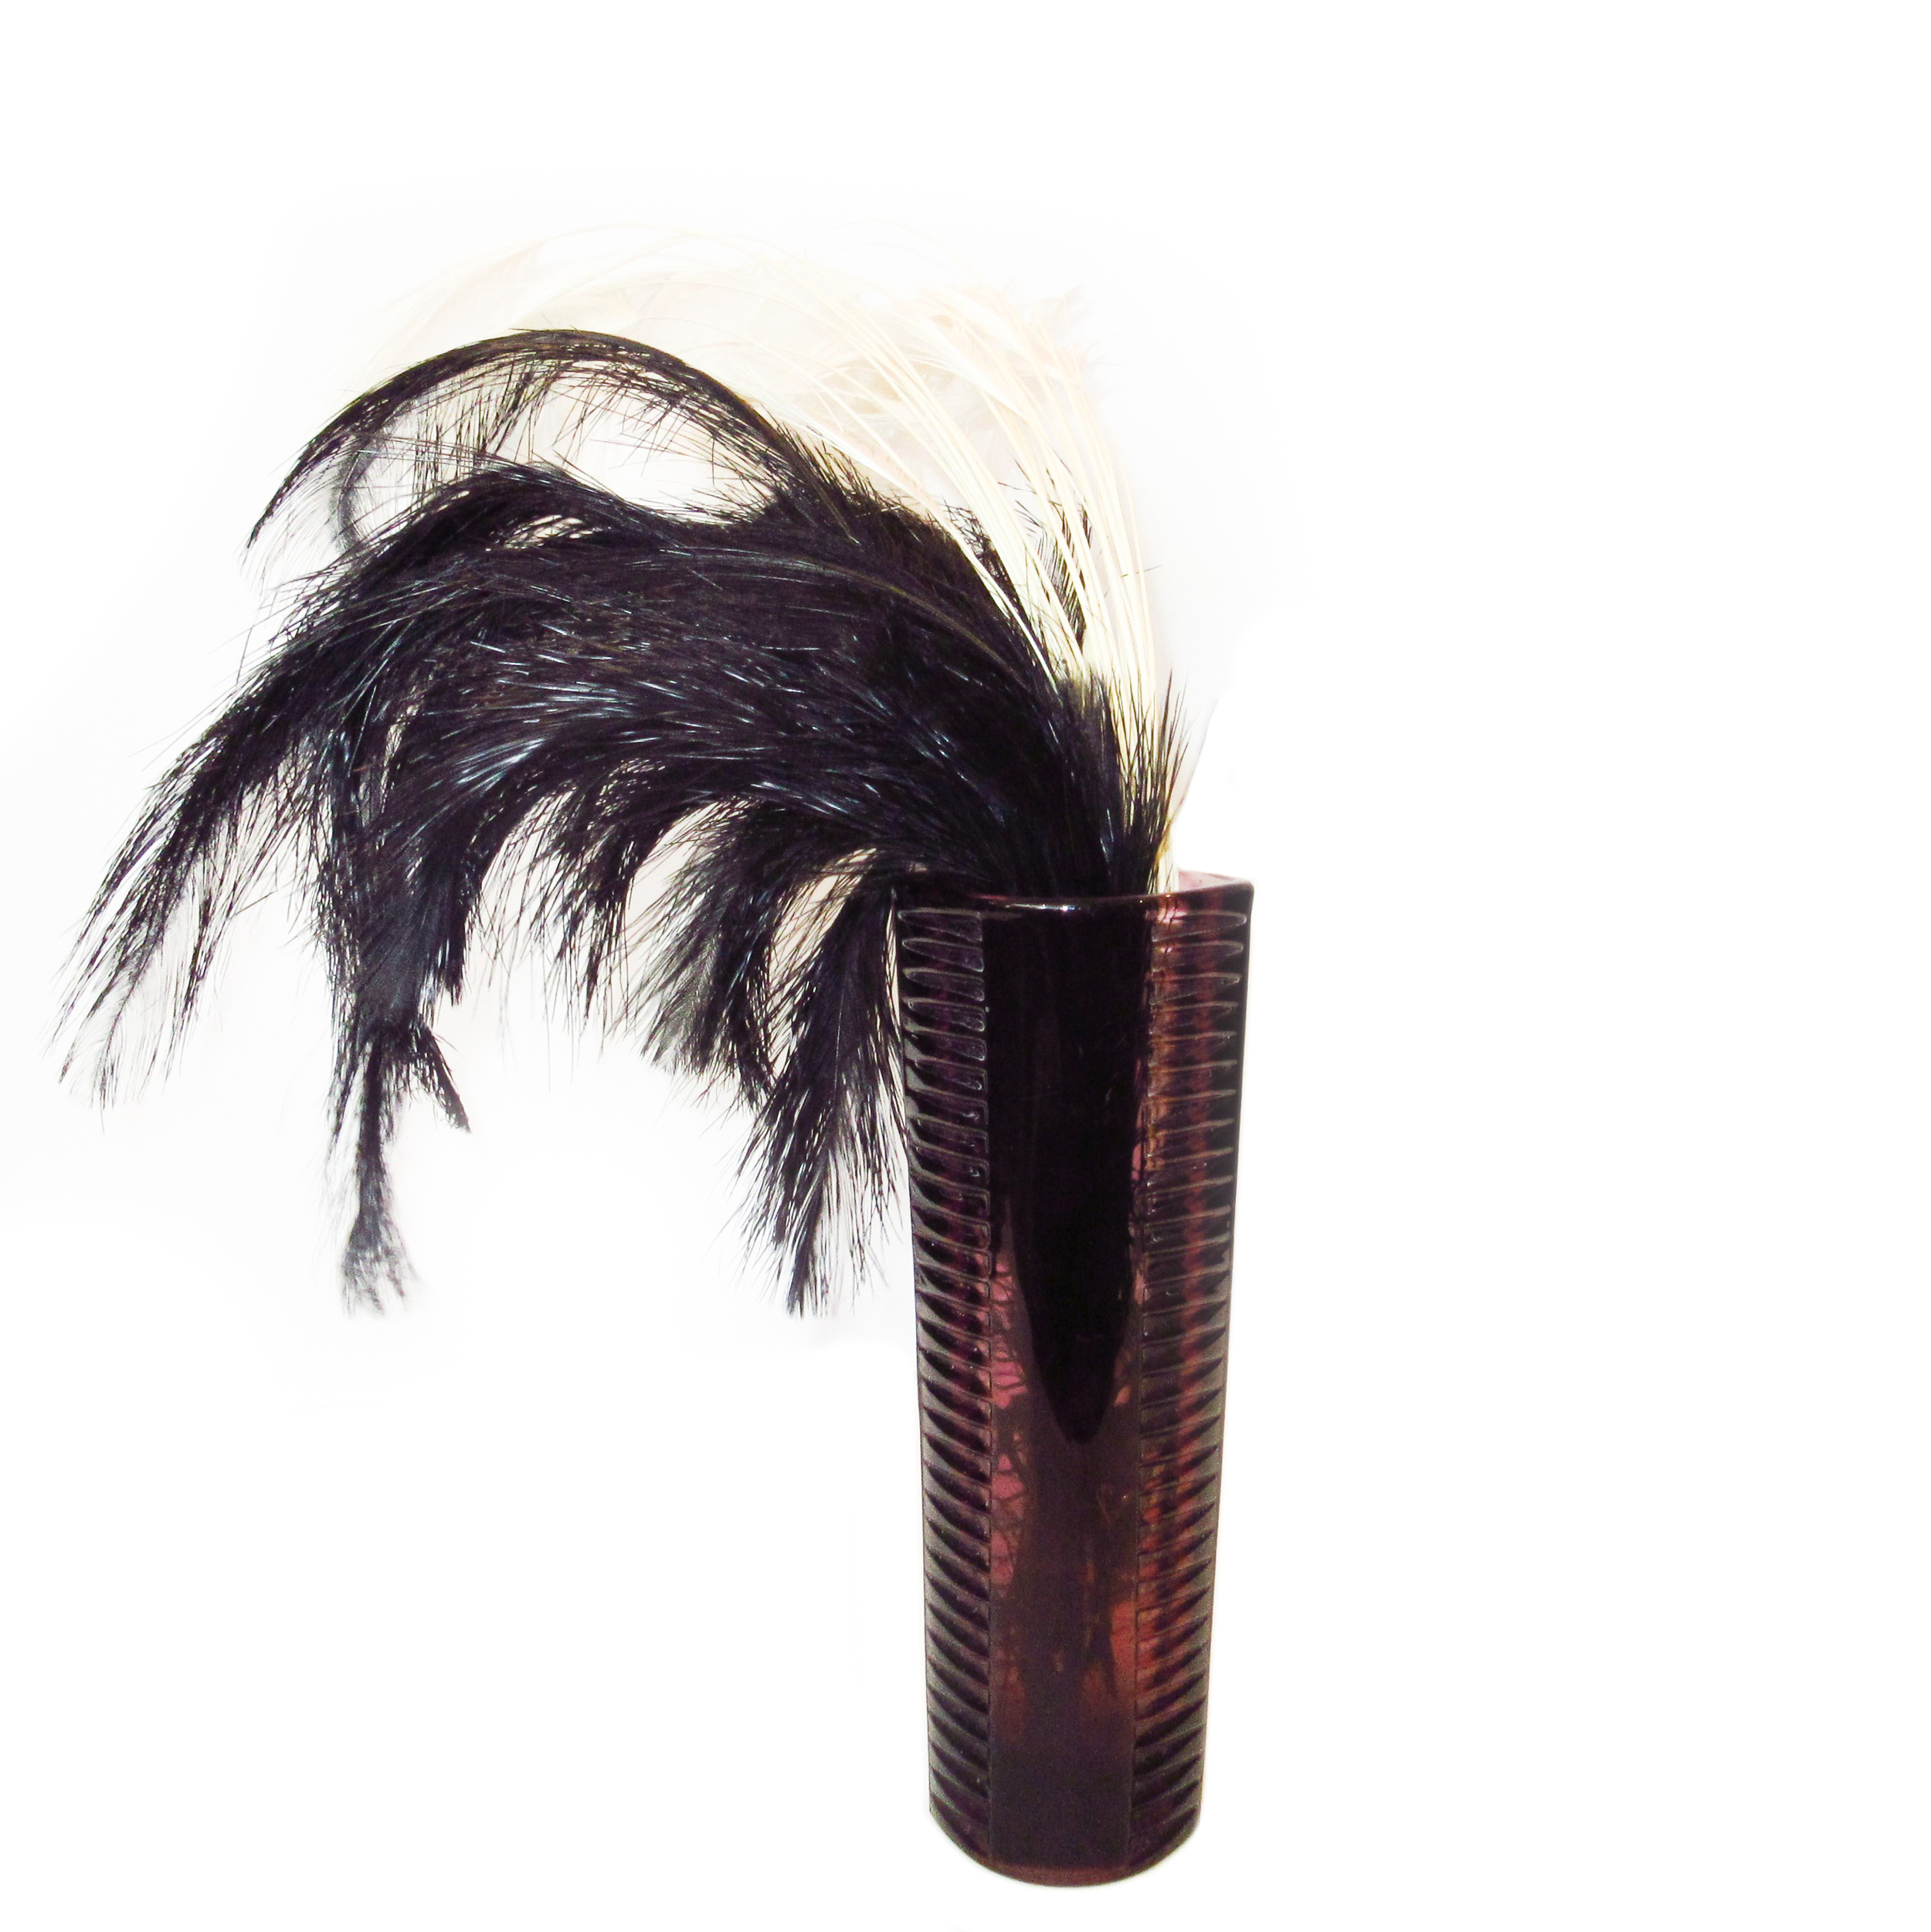 Soft black and white ostrich feathers